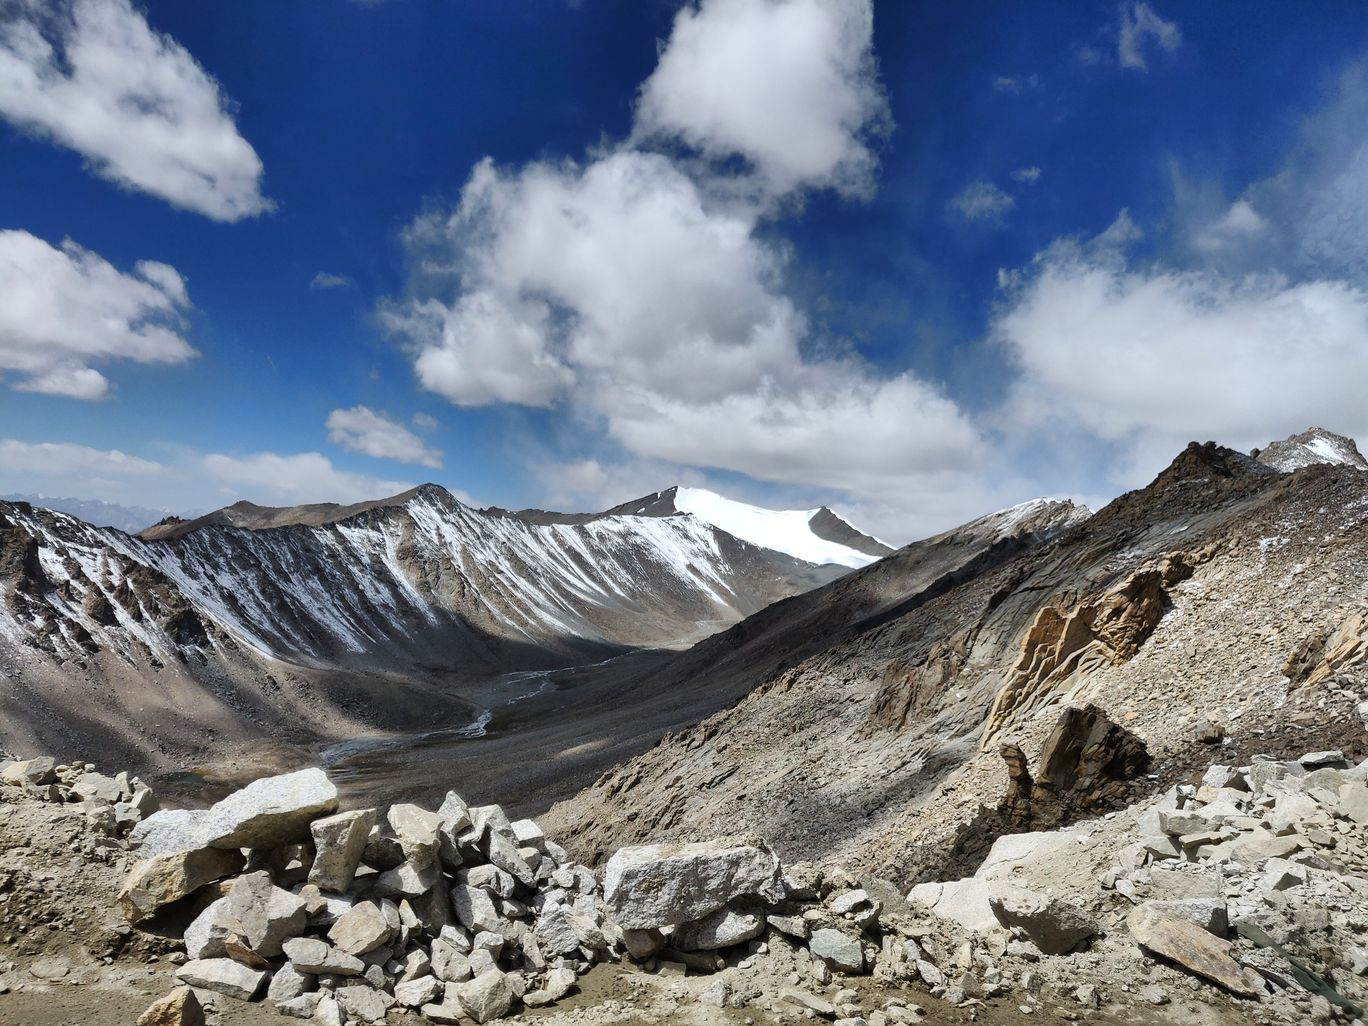 Photo of Khardung La By Bhumij Khandelwal